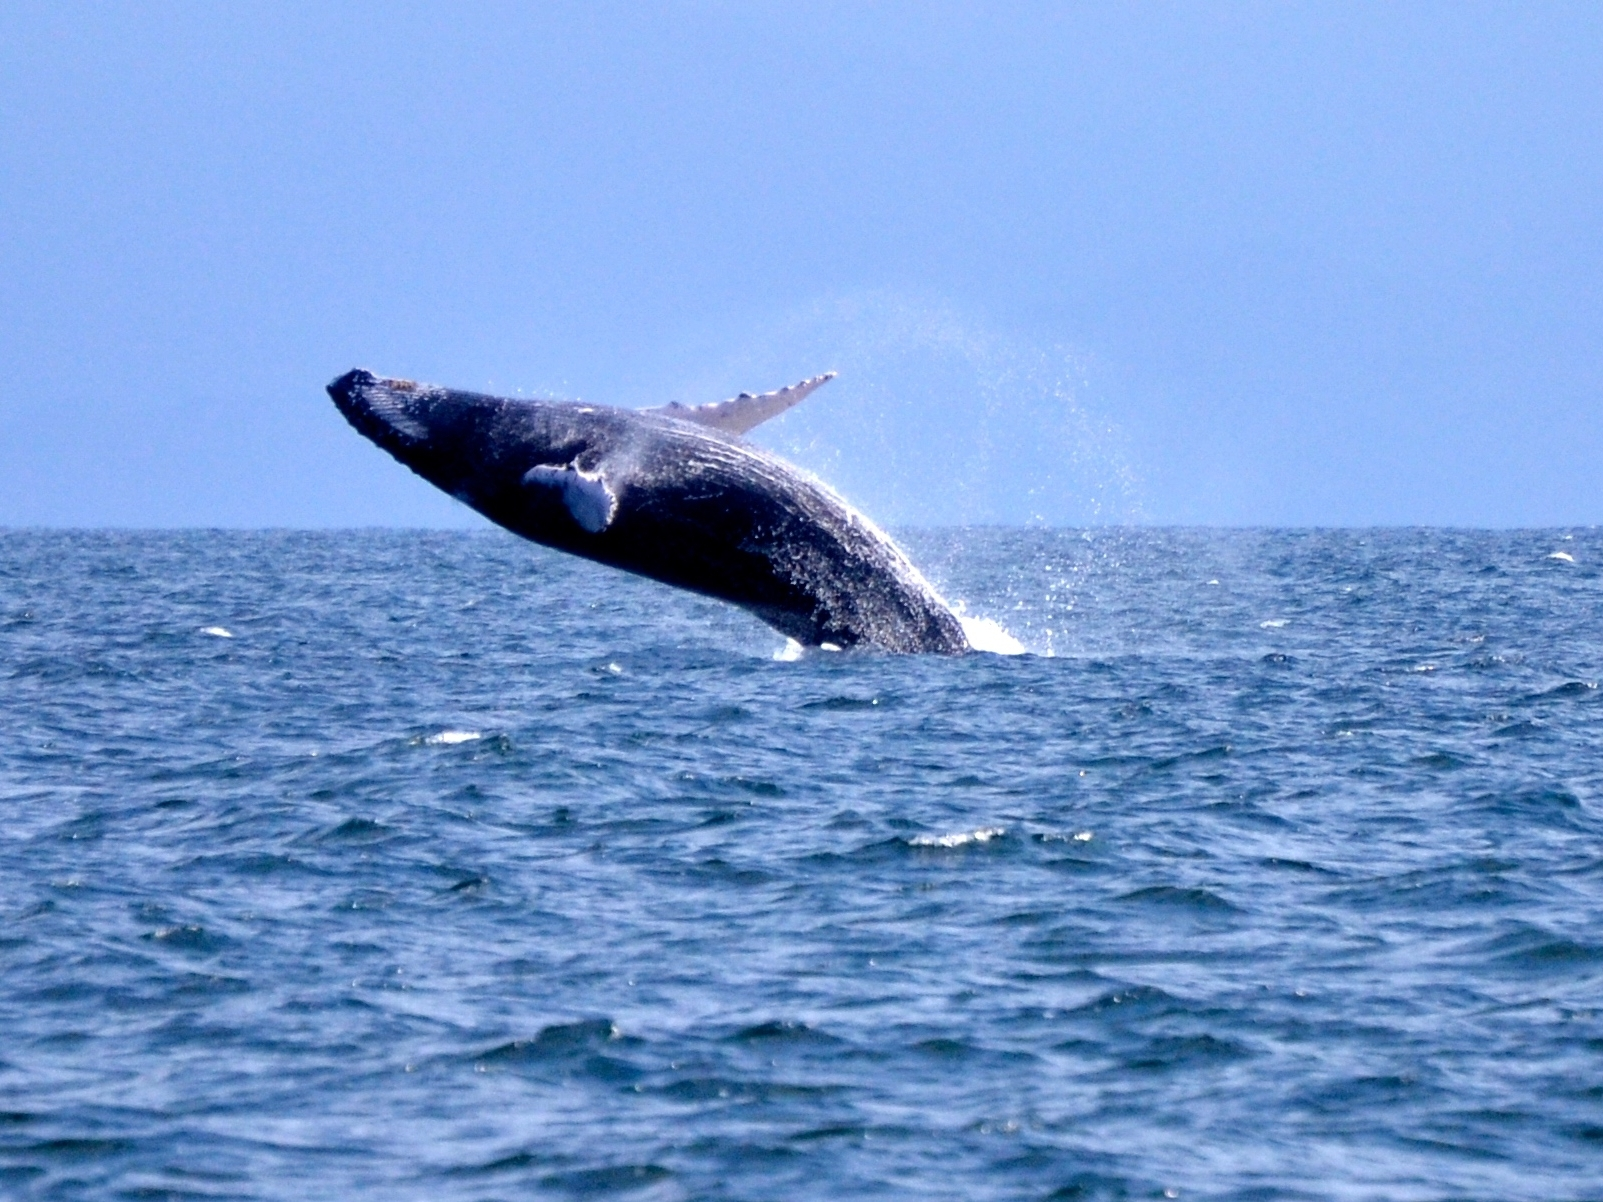 Watch the Whales - Attracted by the calm and warm waters of the Samana Bay, the humpback whale population explodes every winter. You can meet this gentle giants at a unique experience that will last forever. The whale chasing excursions consist of a half day boat trip. Get your camera ready for awesome shots of this beautiful creatures.